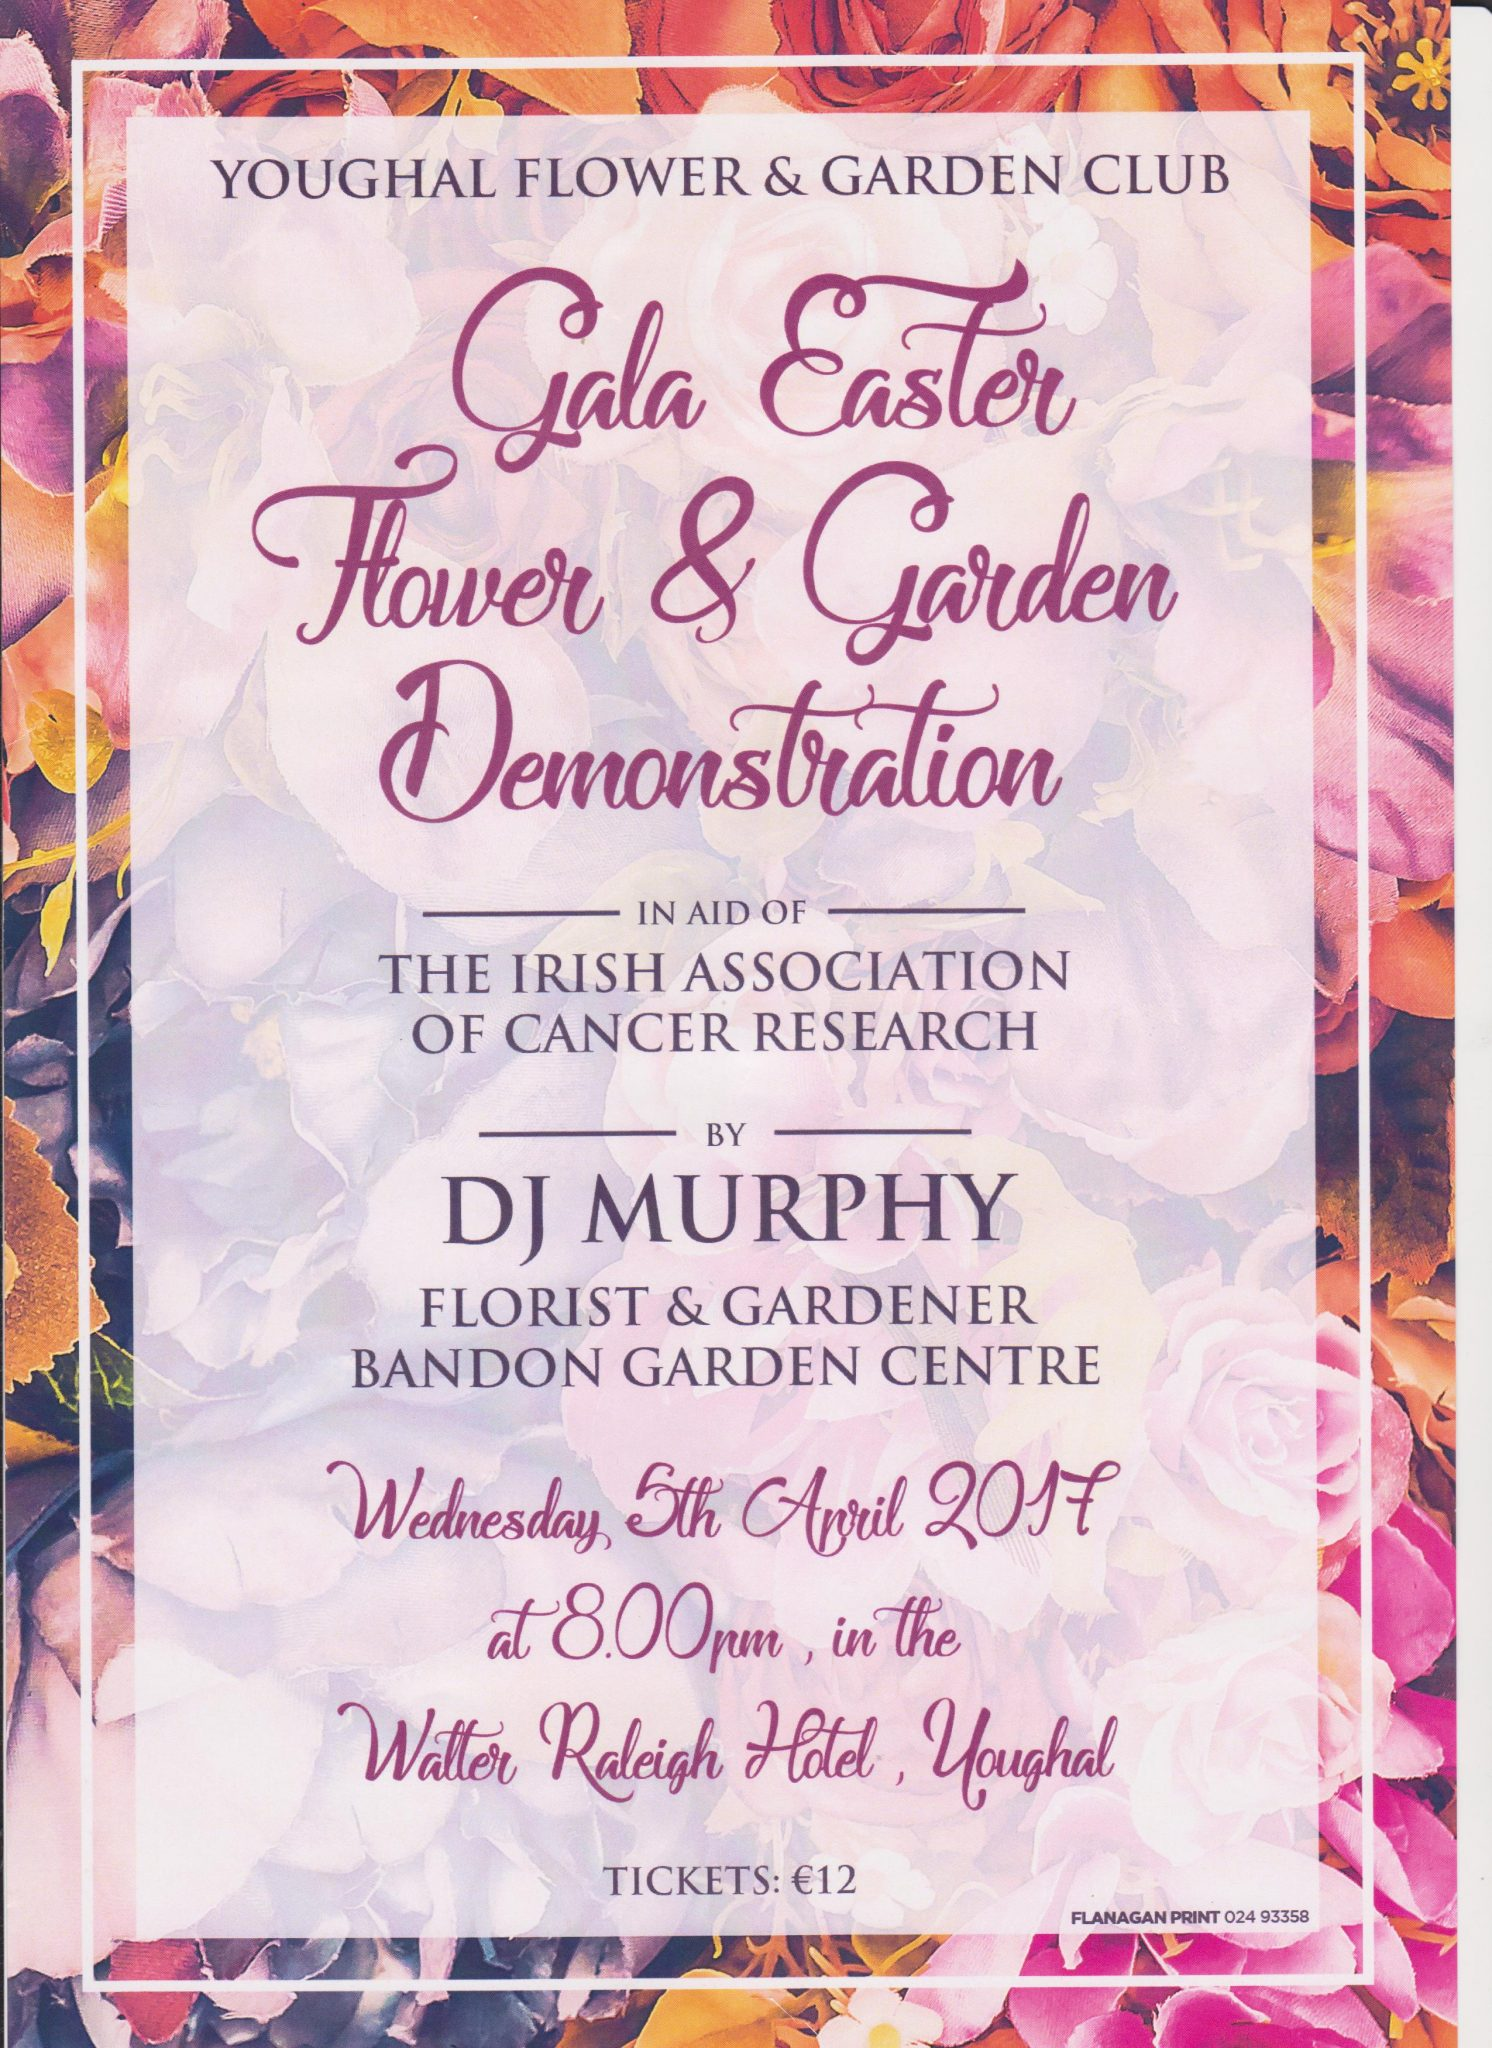 Gala Easter Flower & Garden Demonstration hosted by Youghal Flower & Garden Club - Ring of Cork